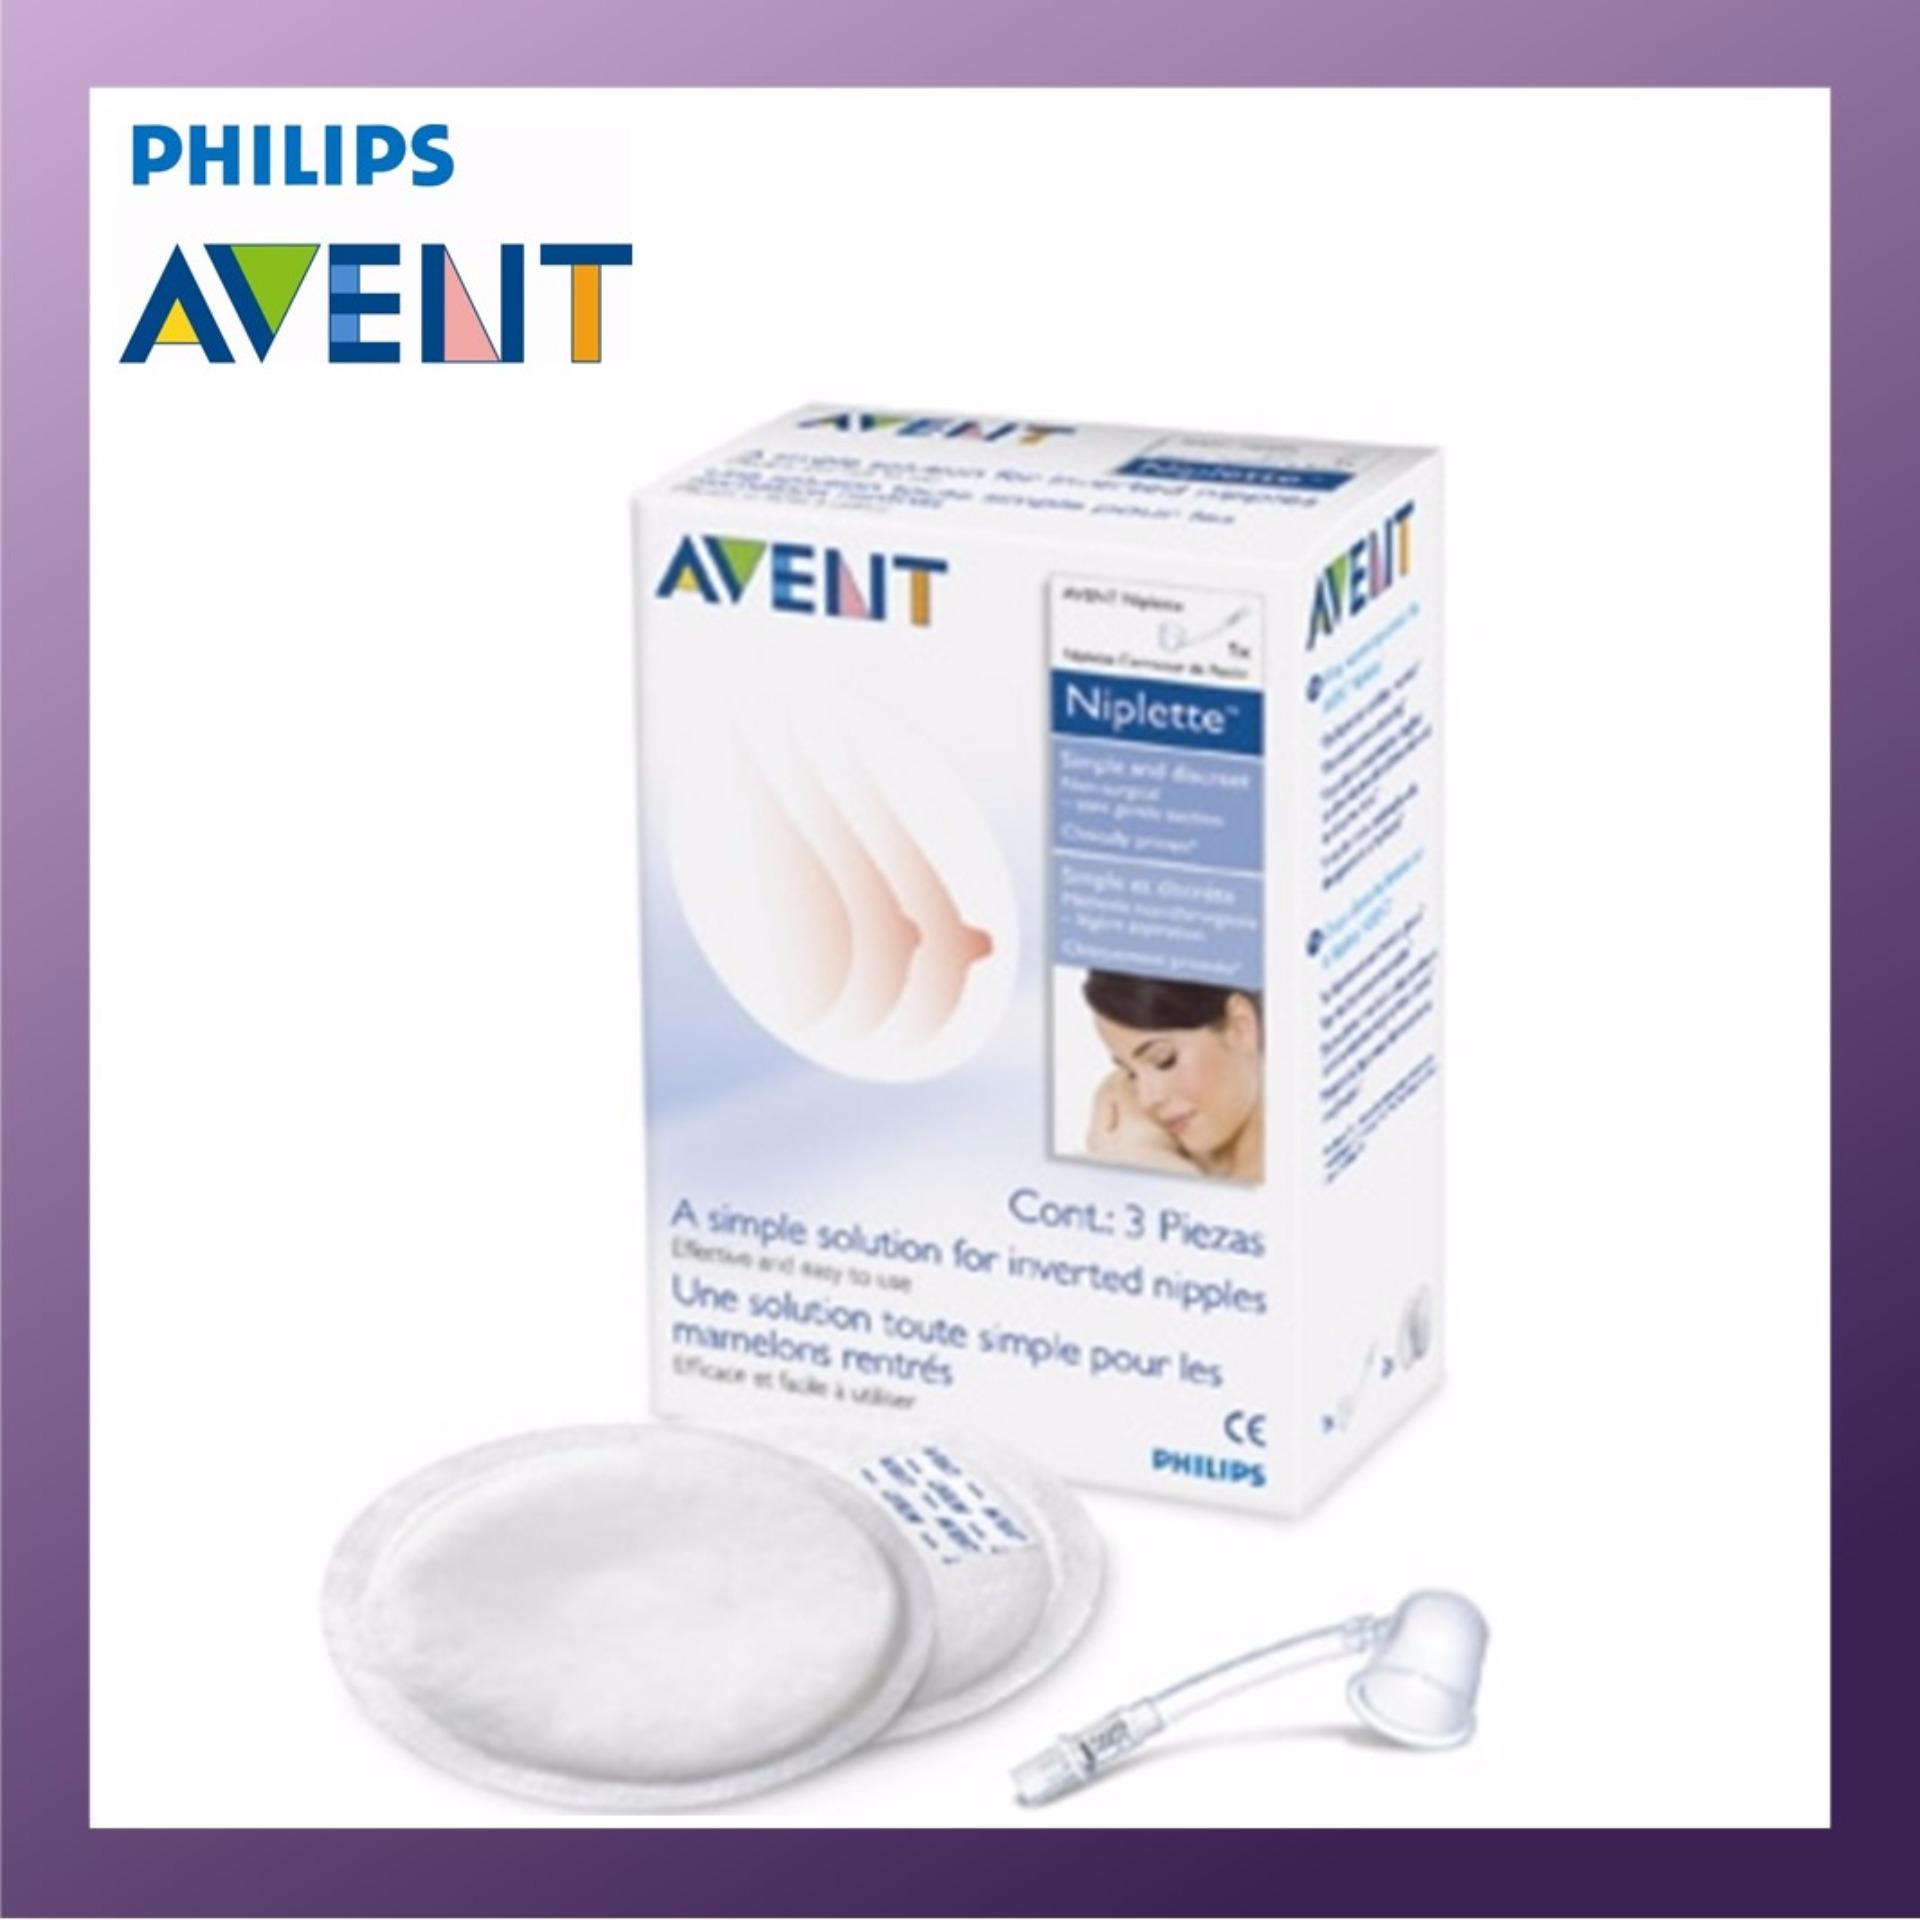 Discount Philips Avent Niplette Singapore